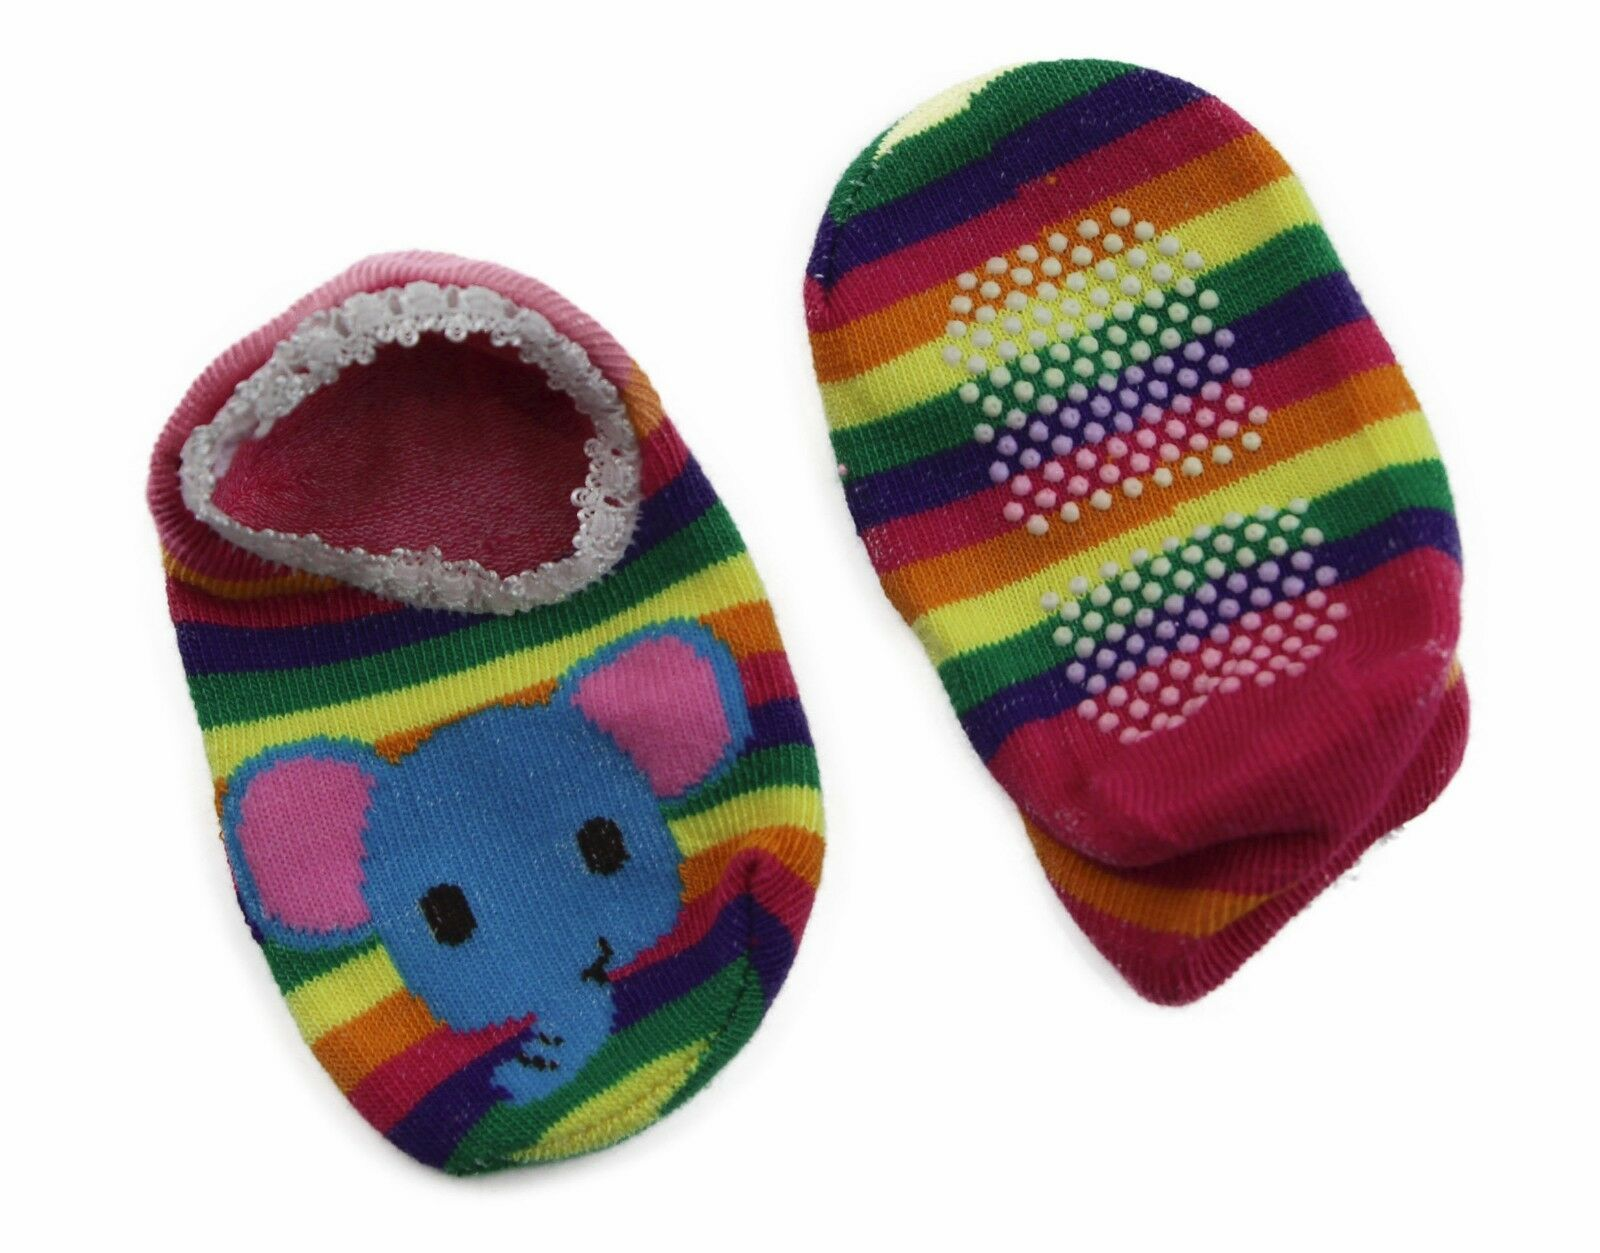 thumbnail 21 - Baby Footlets Kids Toddler Cotton Socks Anti Slip Grip Boys Girls 6-18 Months